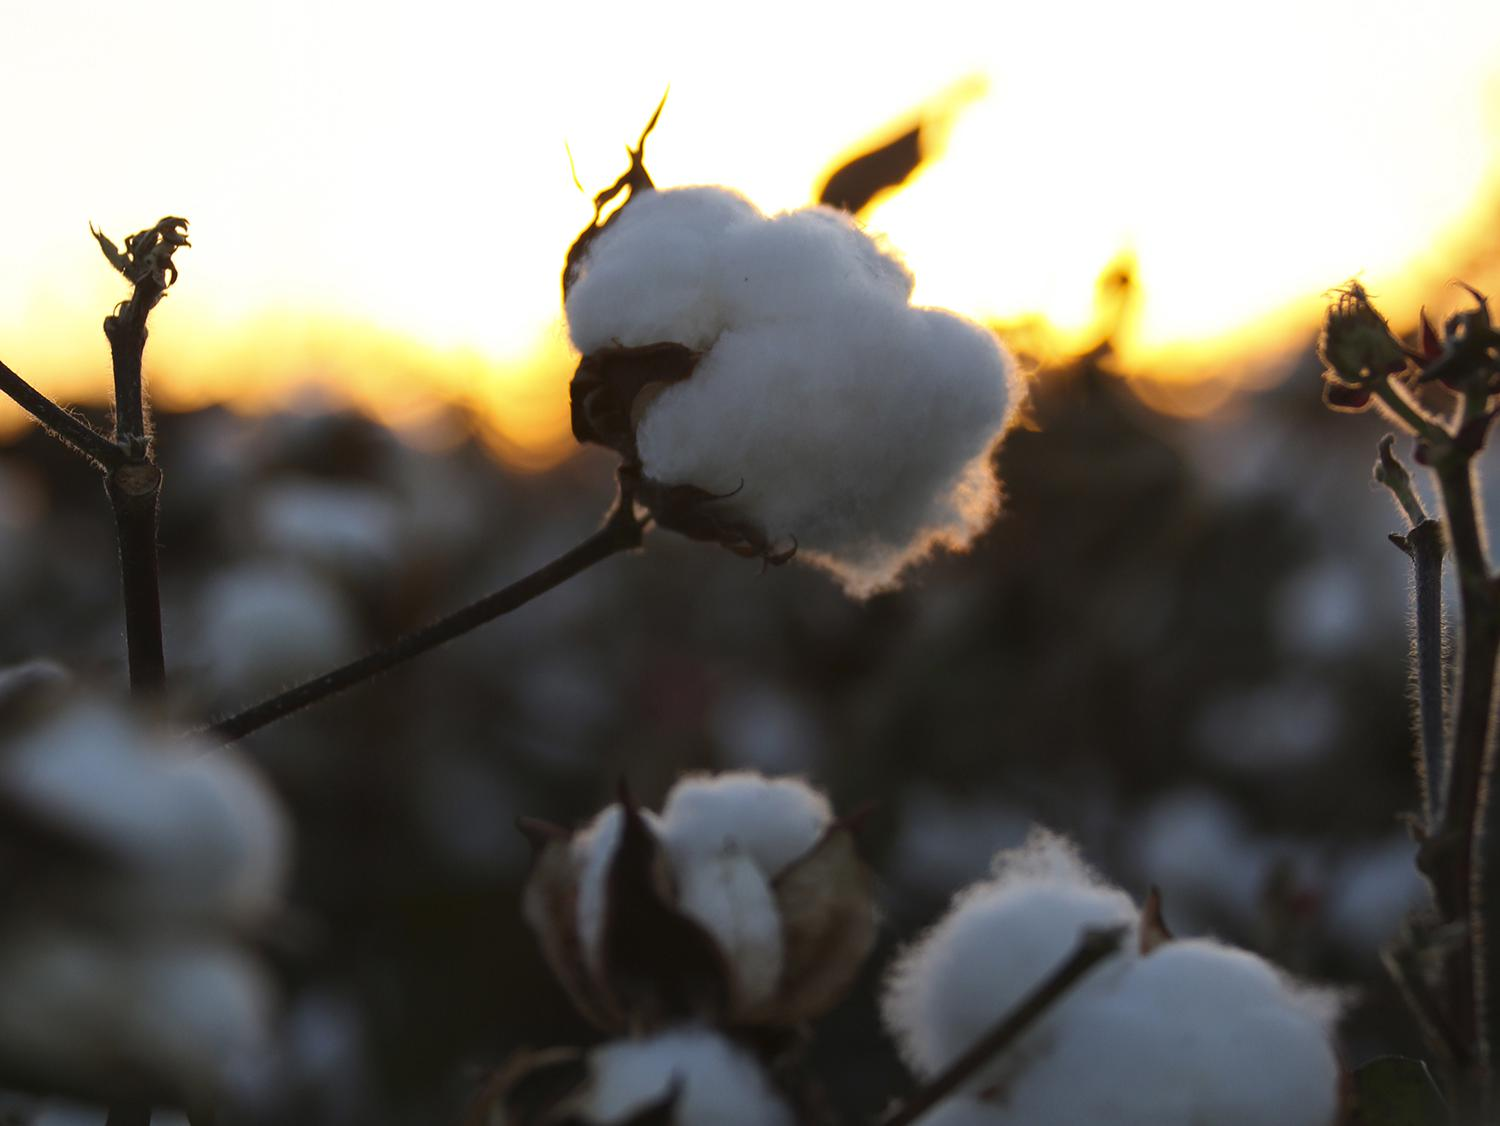 Mississippi producers are expected to plant 550,000 cotton acres this year to meet high export demand. If realized, this will be a 26 percent increase over last year's production. (File photo by MSU Extension/Kat Lawrence)